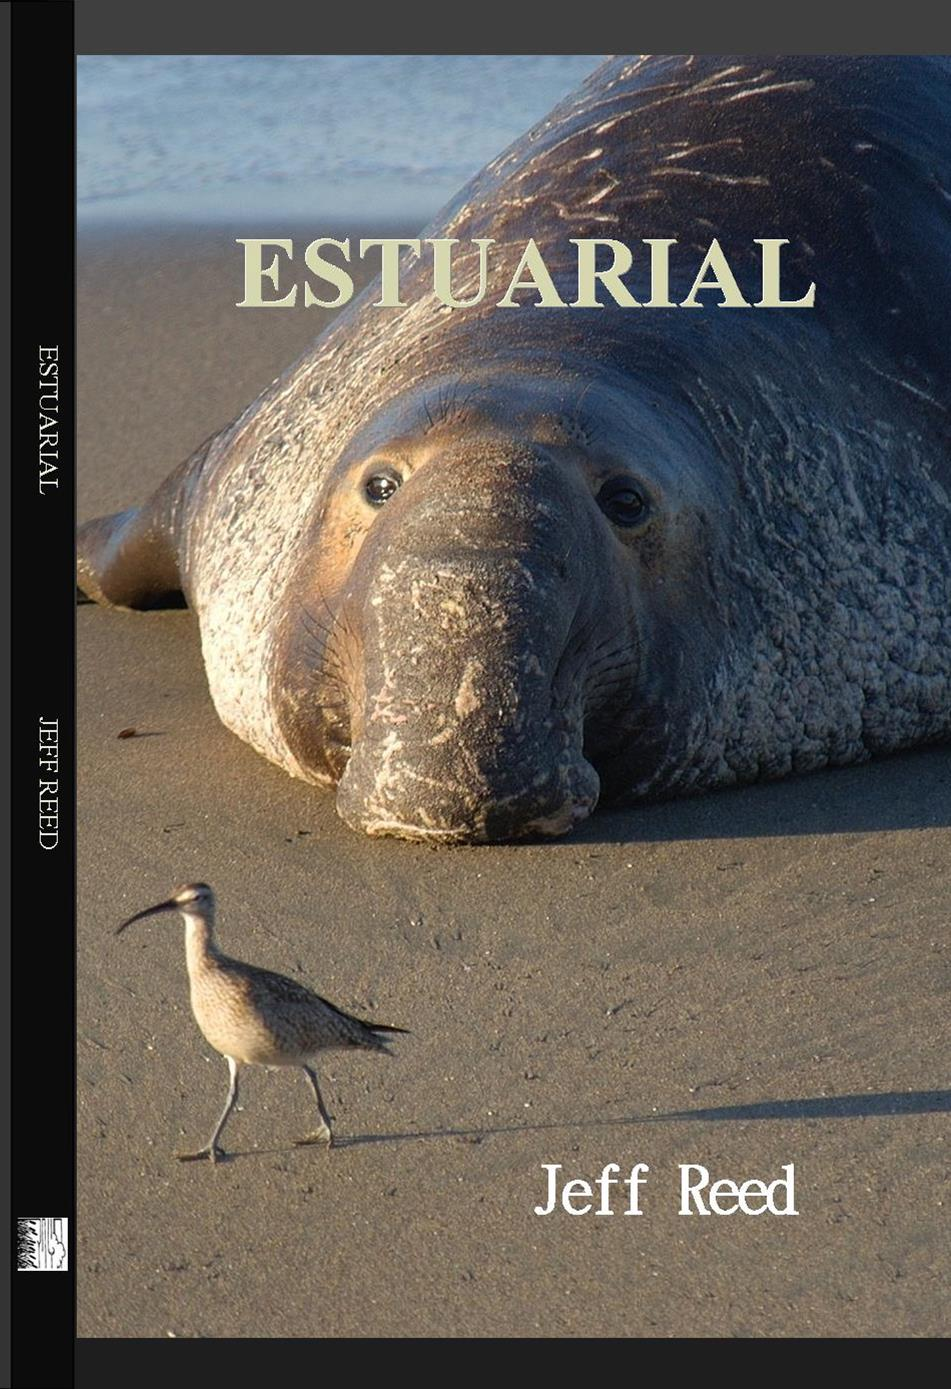 Estuarial Front Cover Cropped.jpg